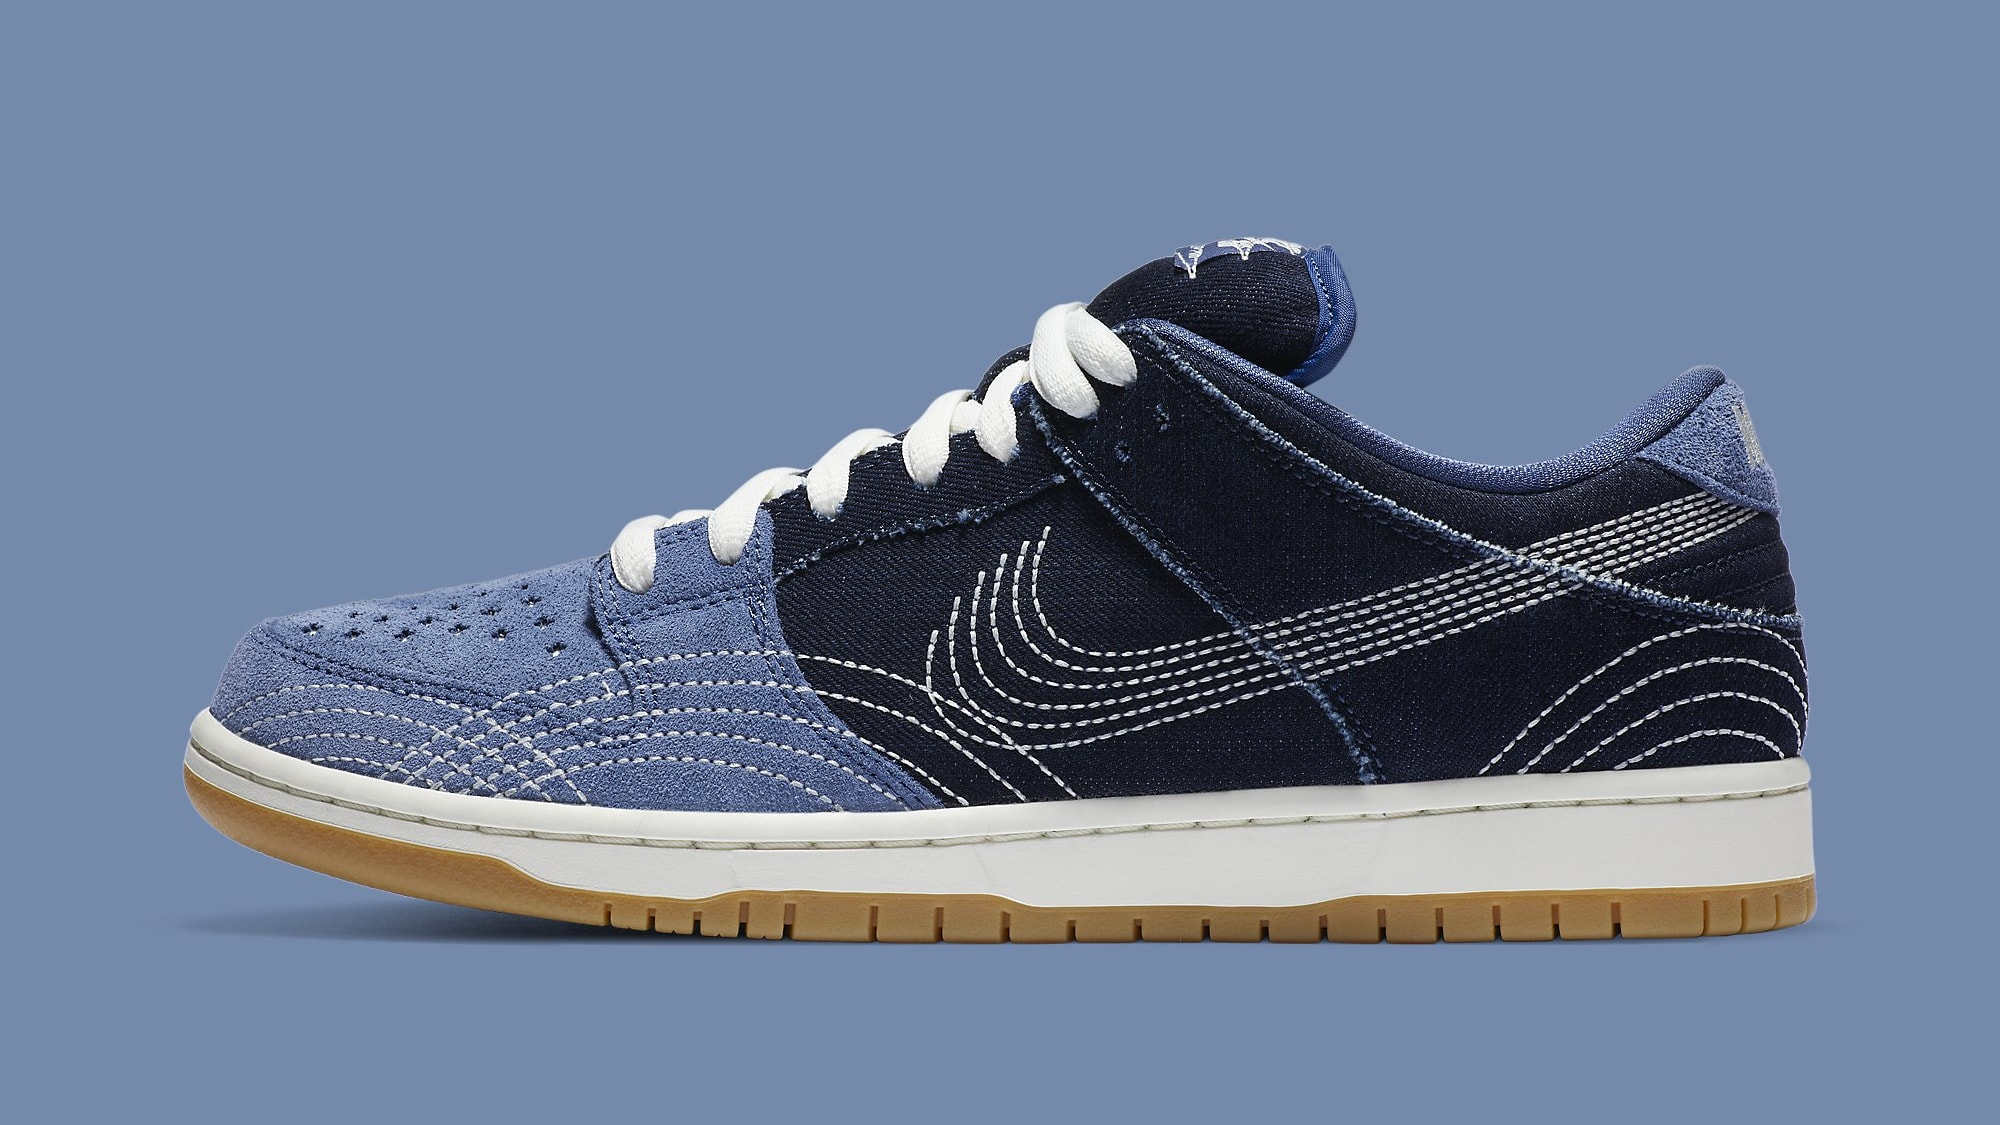 Nike SB Dunk Low 'Sashiko' CV0316-400 Lateral